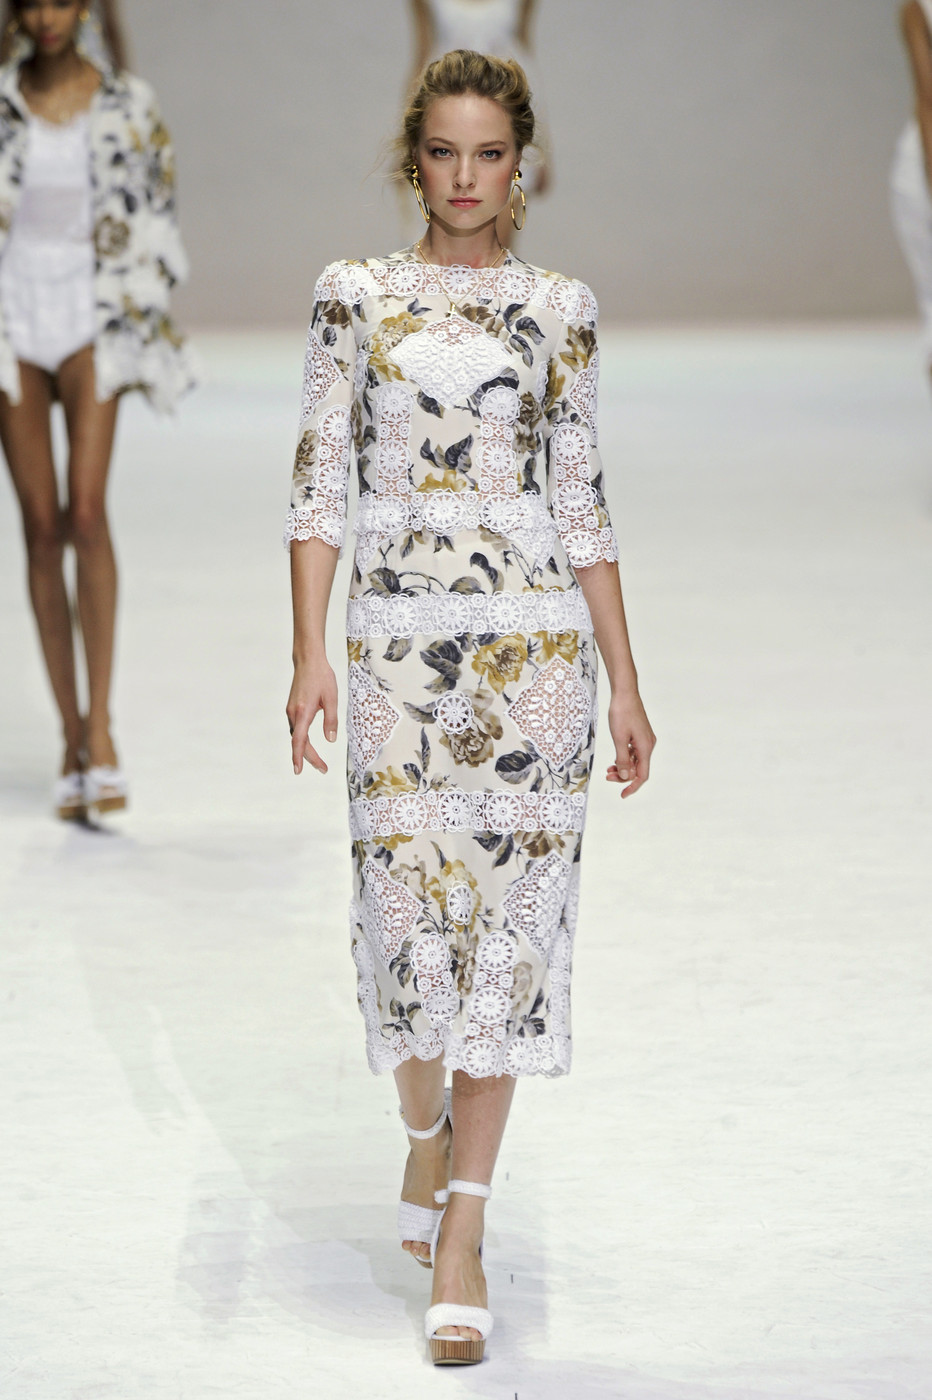 via fashioned by love | Dolce & Gabbana Spring/Summer 2011 | floral trend